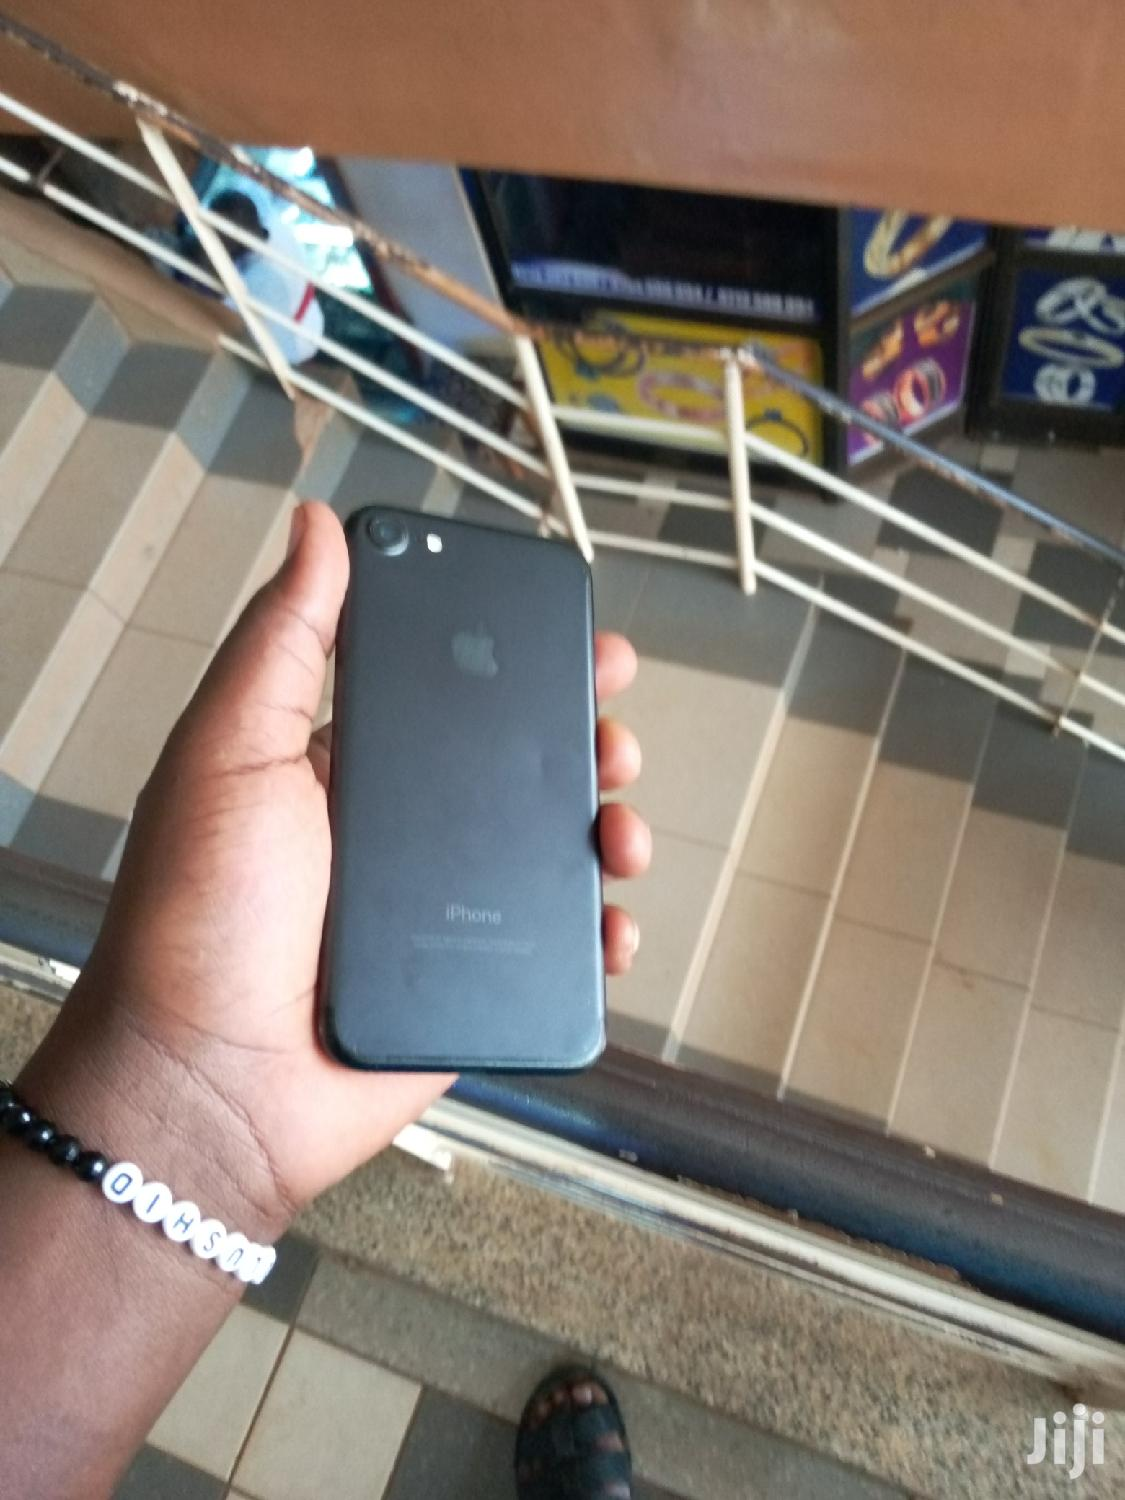 Apple iPhone 7 32 GB Black | Mobile Phones for sale in Kampala, Central Region, Uganda